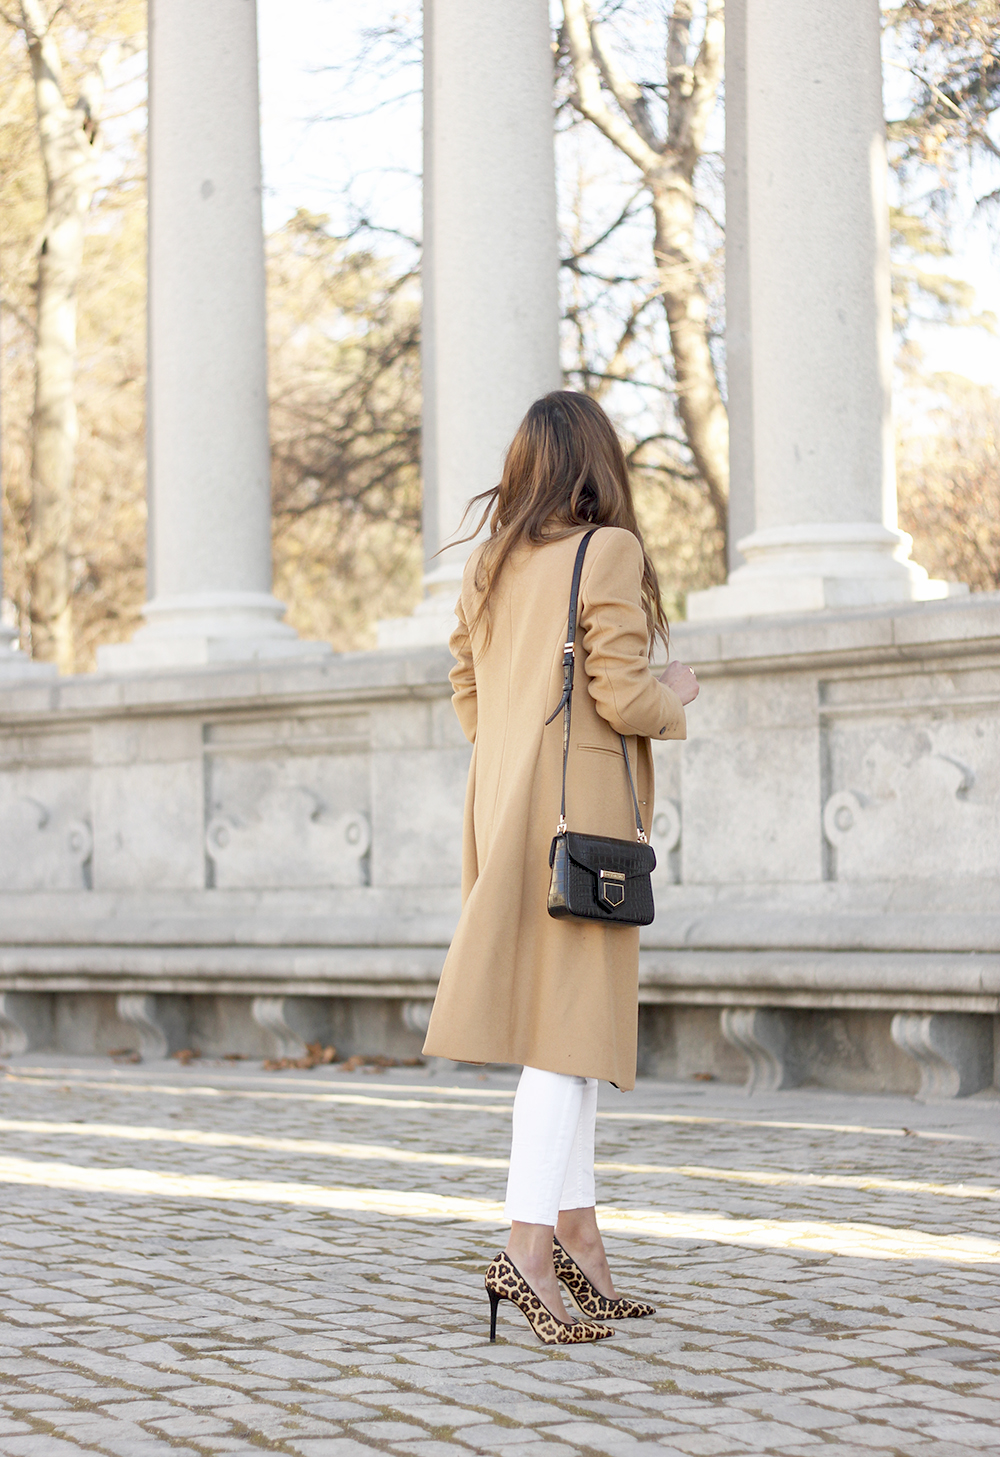 beige coat ripped jeans givenchy bag gucci belt street style outfit 20199